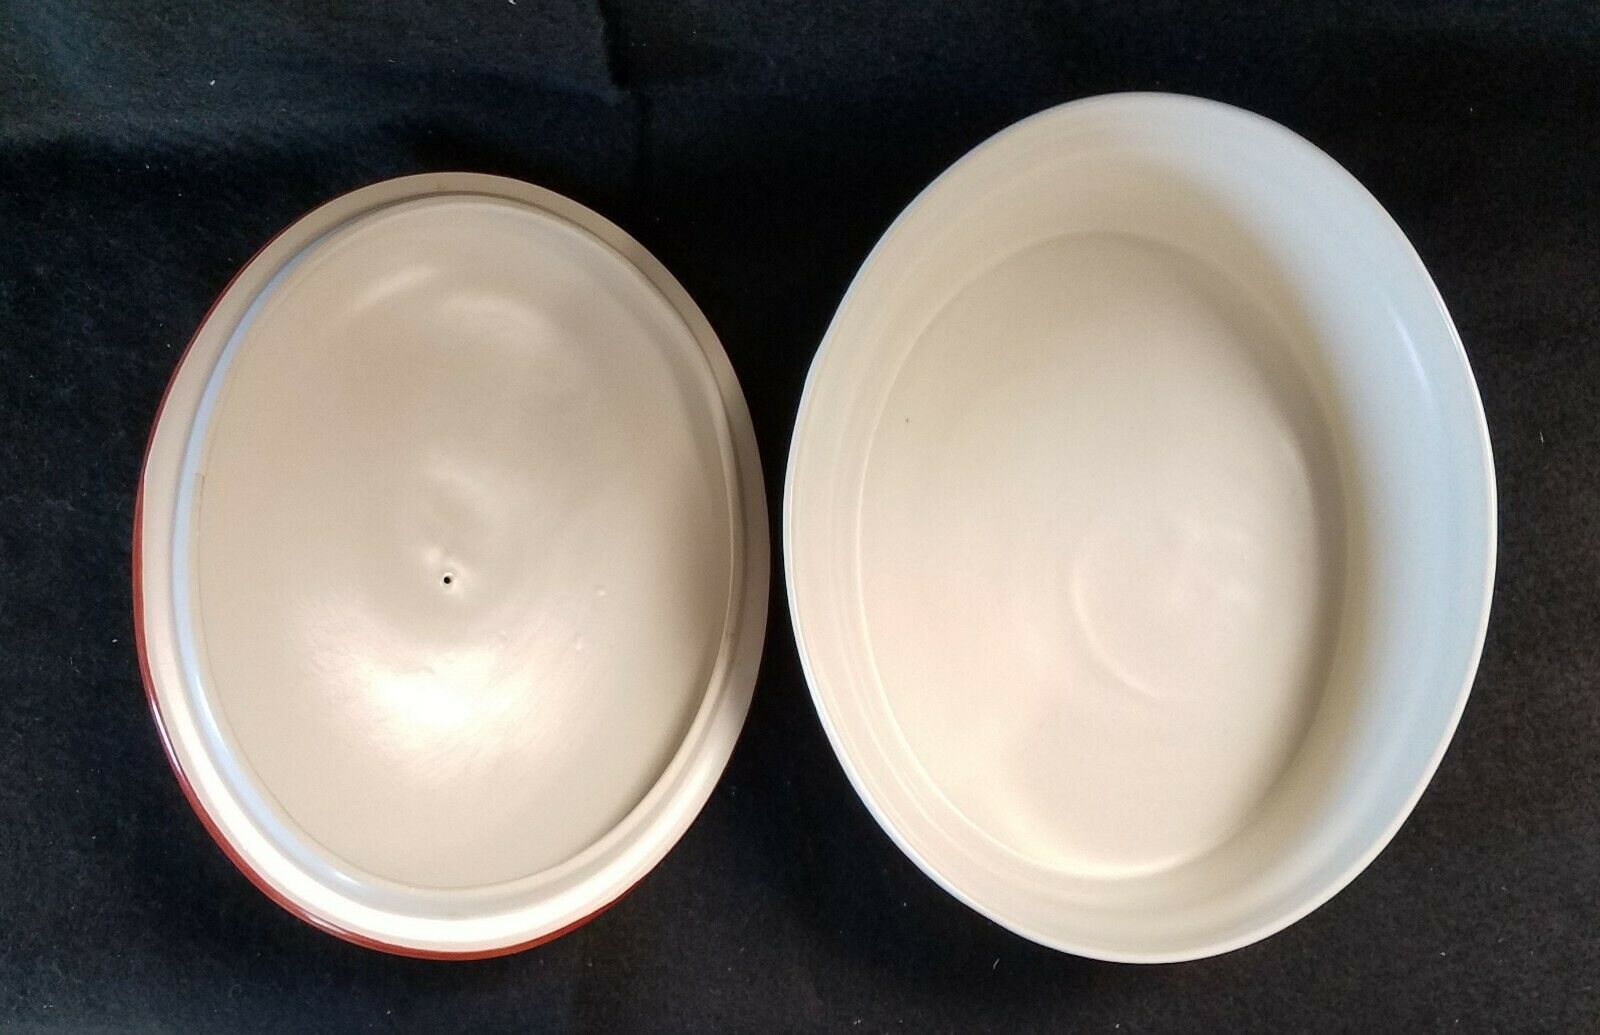 LENOX WINTER GREETINGS Covered Casserole Server 3 Qt Made In Portugal  - $298.95